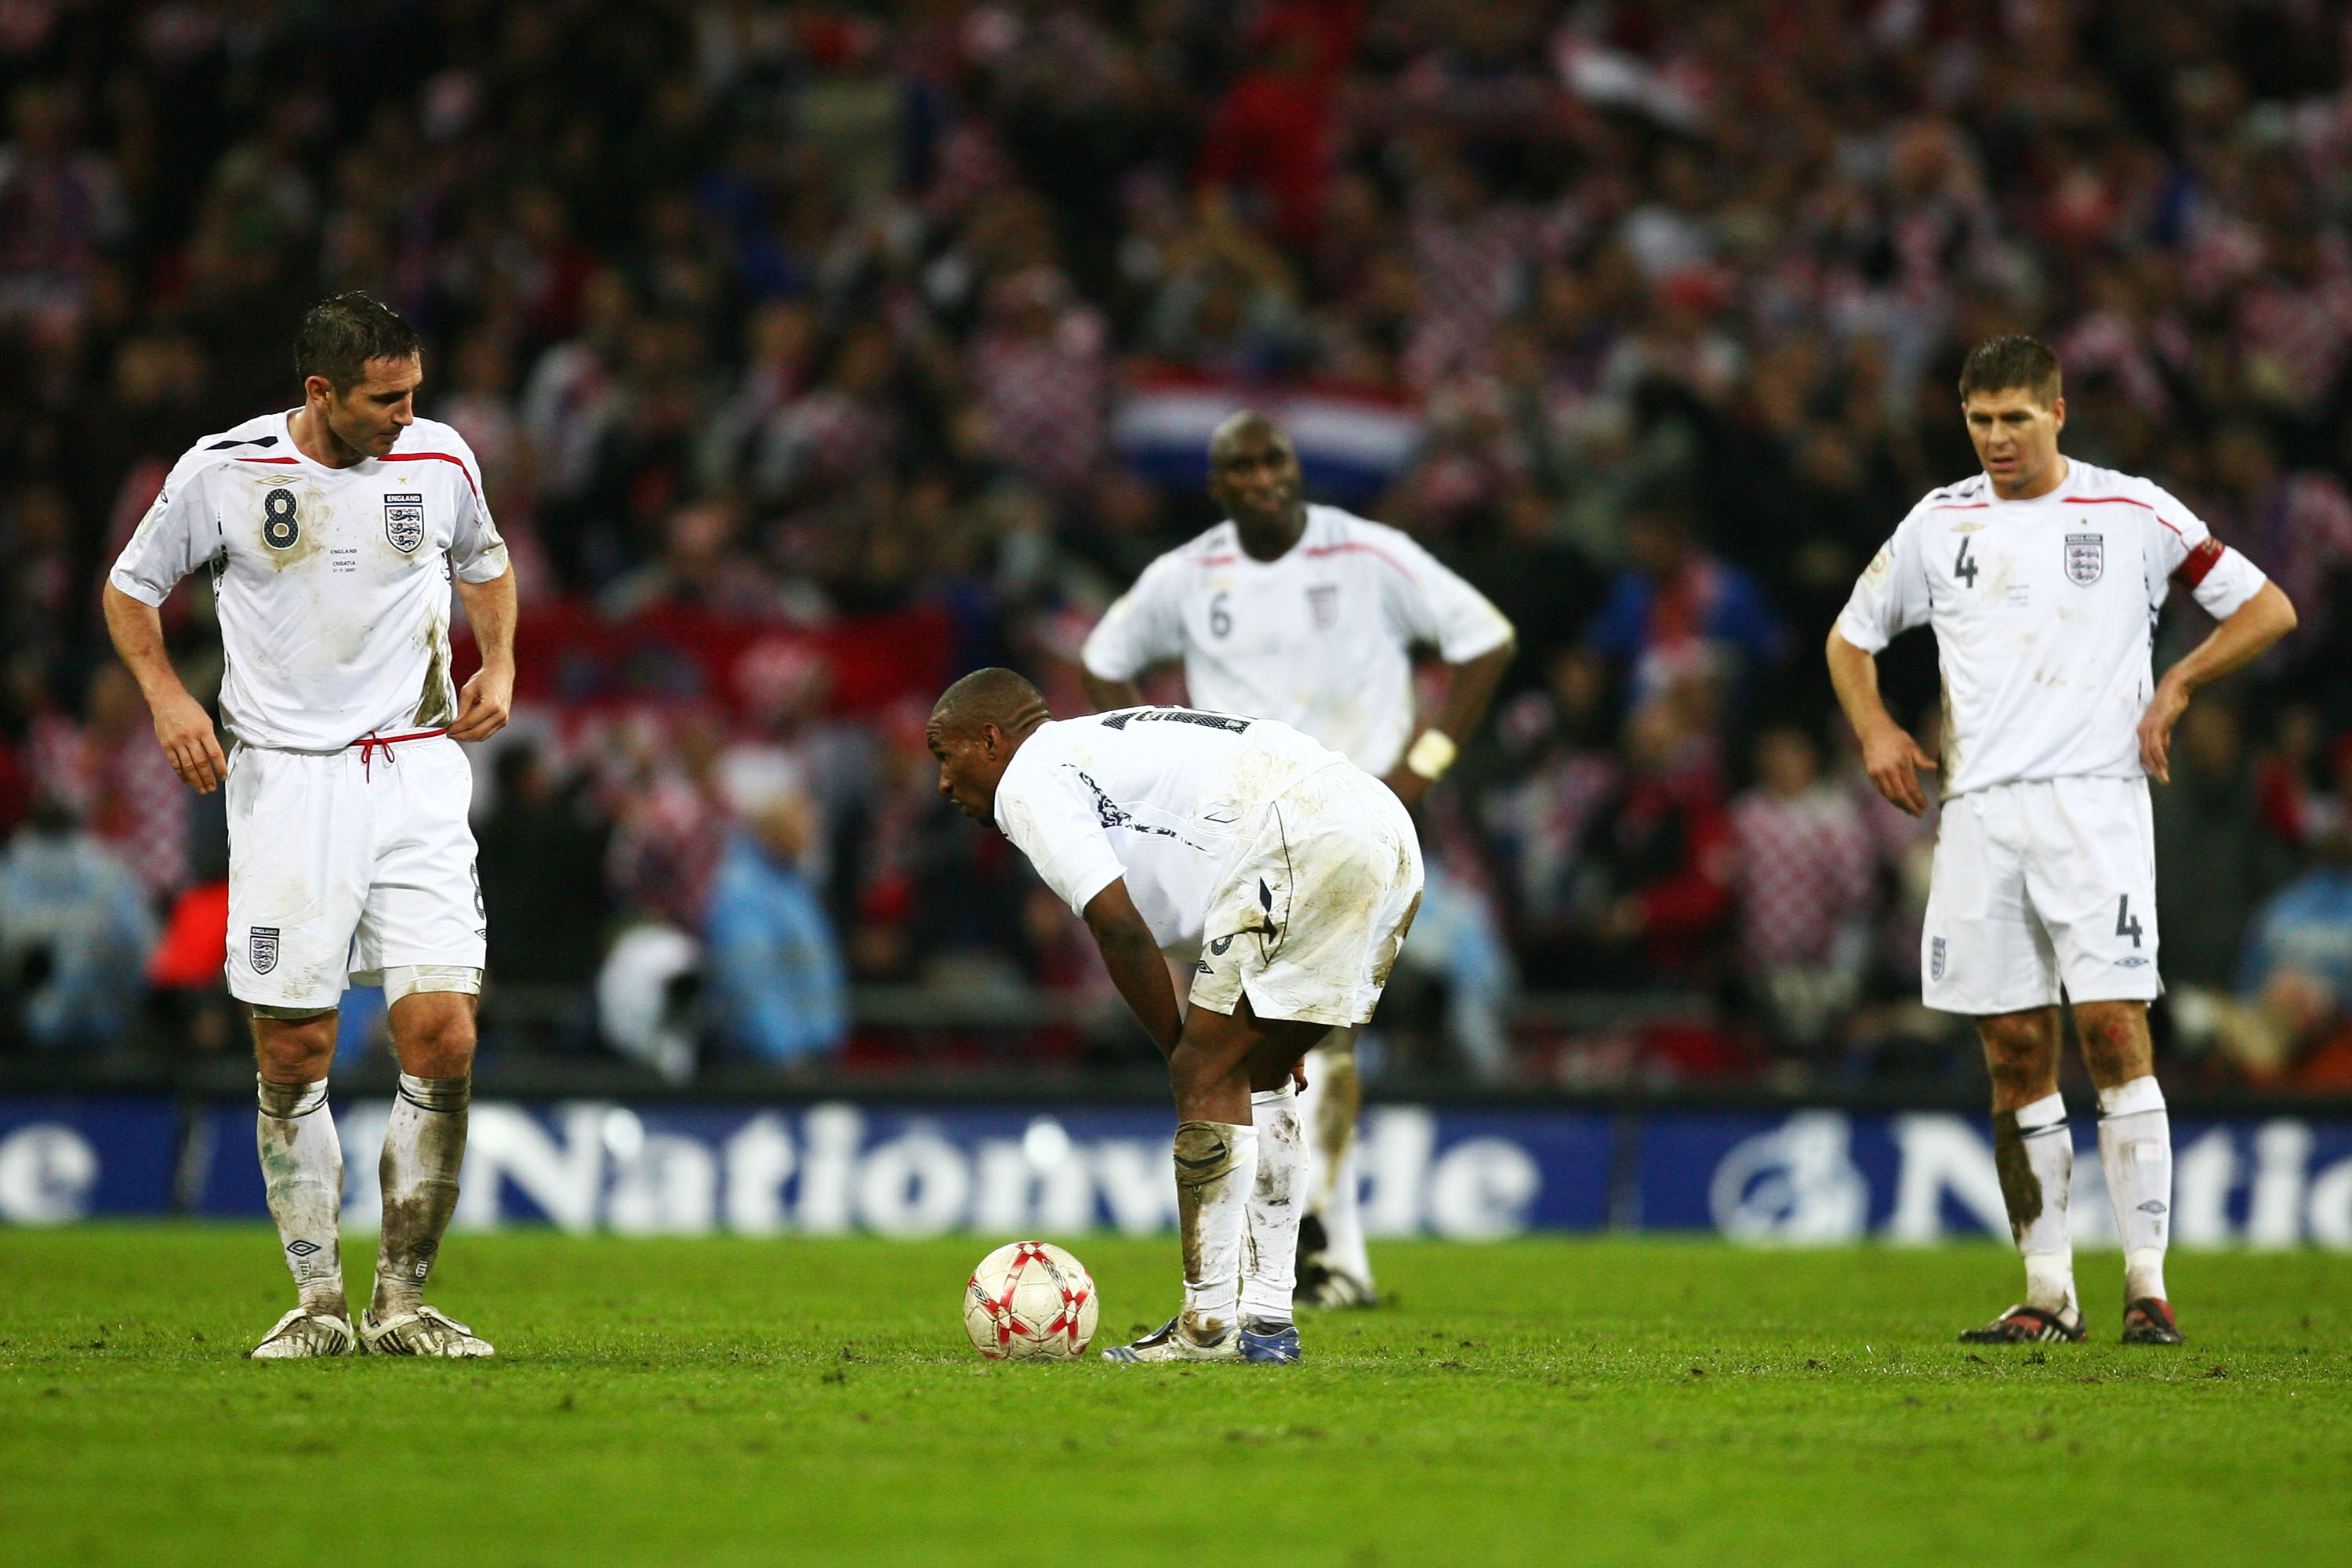 LONDON - NOVEMBER 21:  Jermain Defoe of England looks dejected with Frank Lampard and Steven Gerrard during the Euro 2008 Group E qualifying match between England and Croatia at Wembley Stadium on November 21, 2007 in London, England.  (Photo by Alex Live